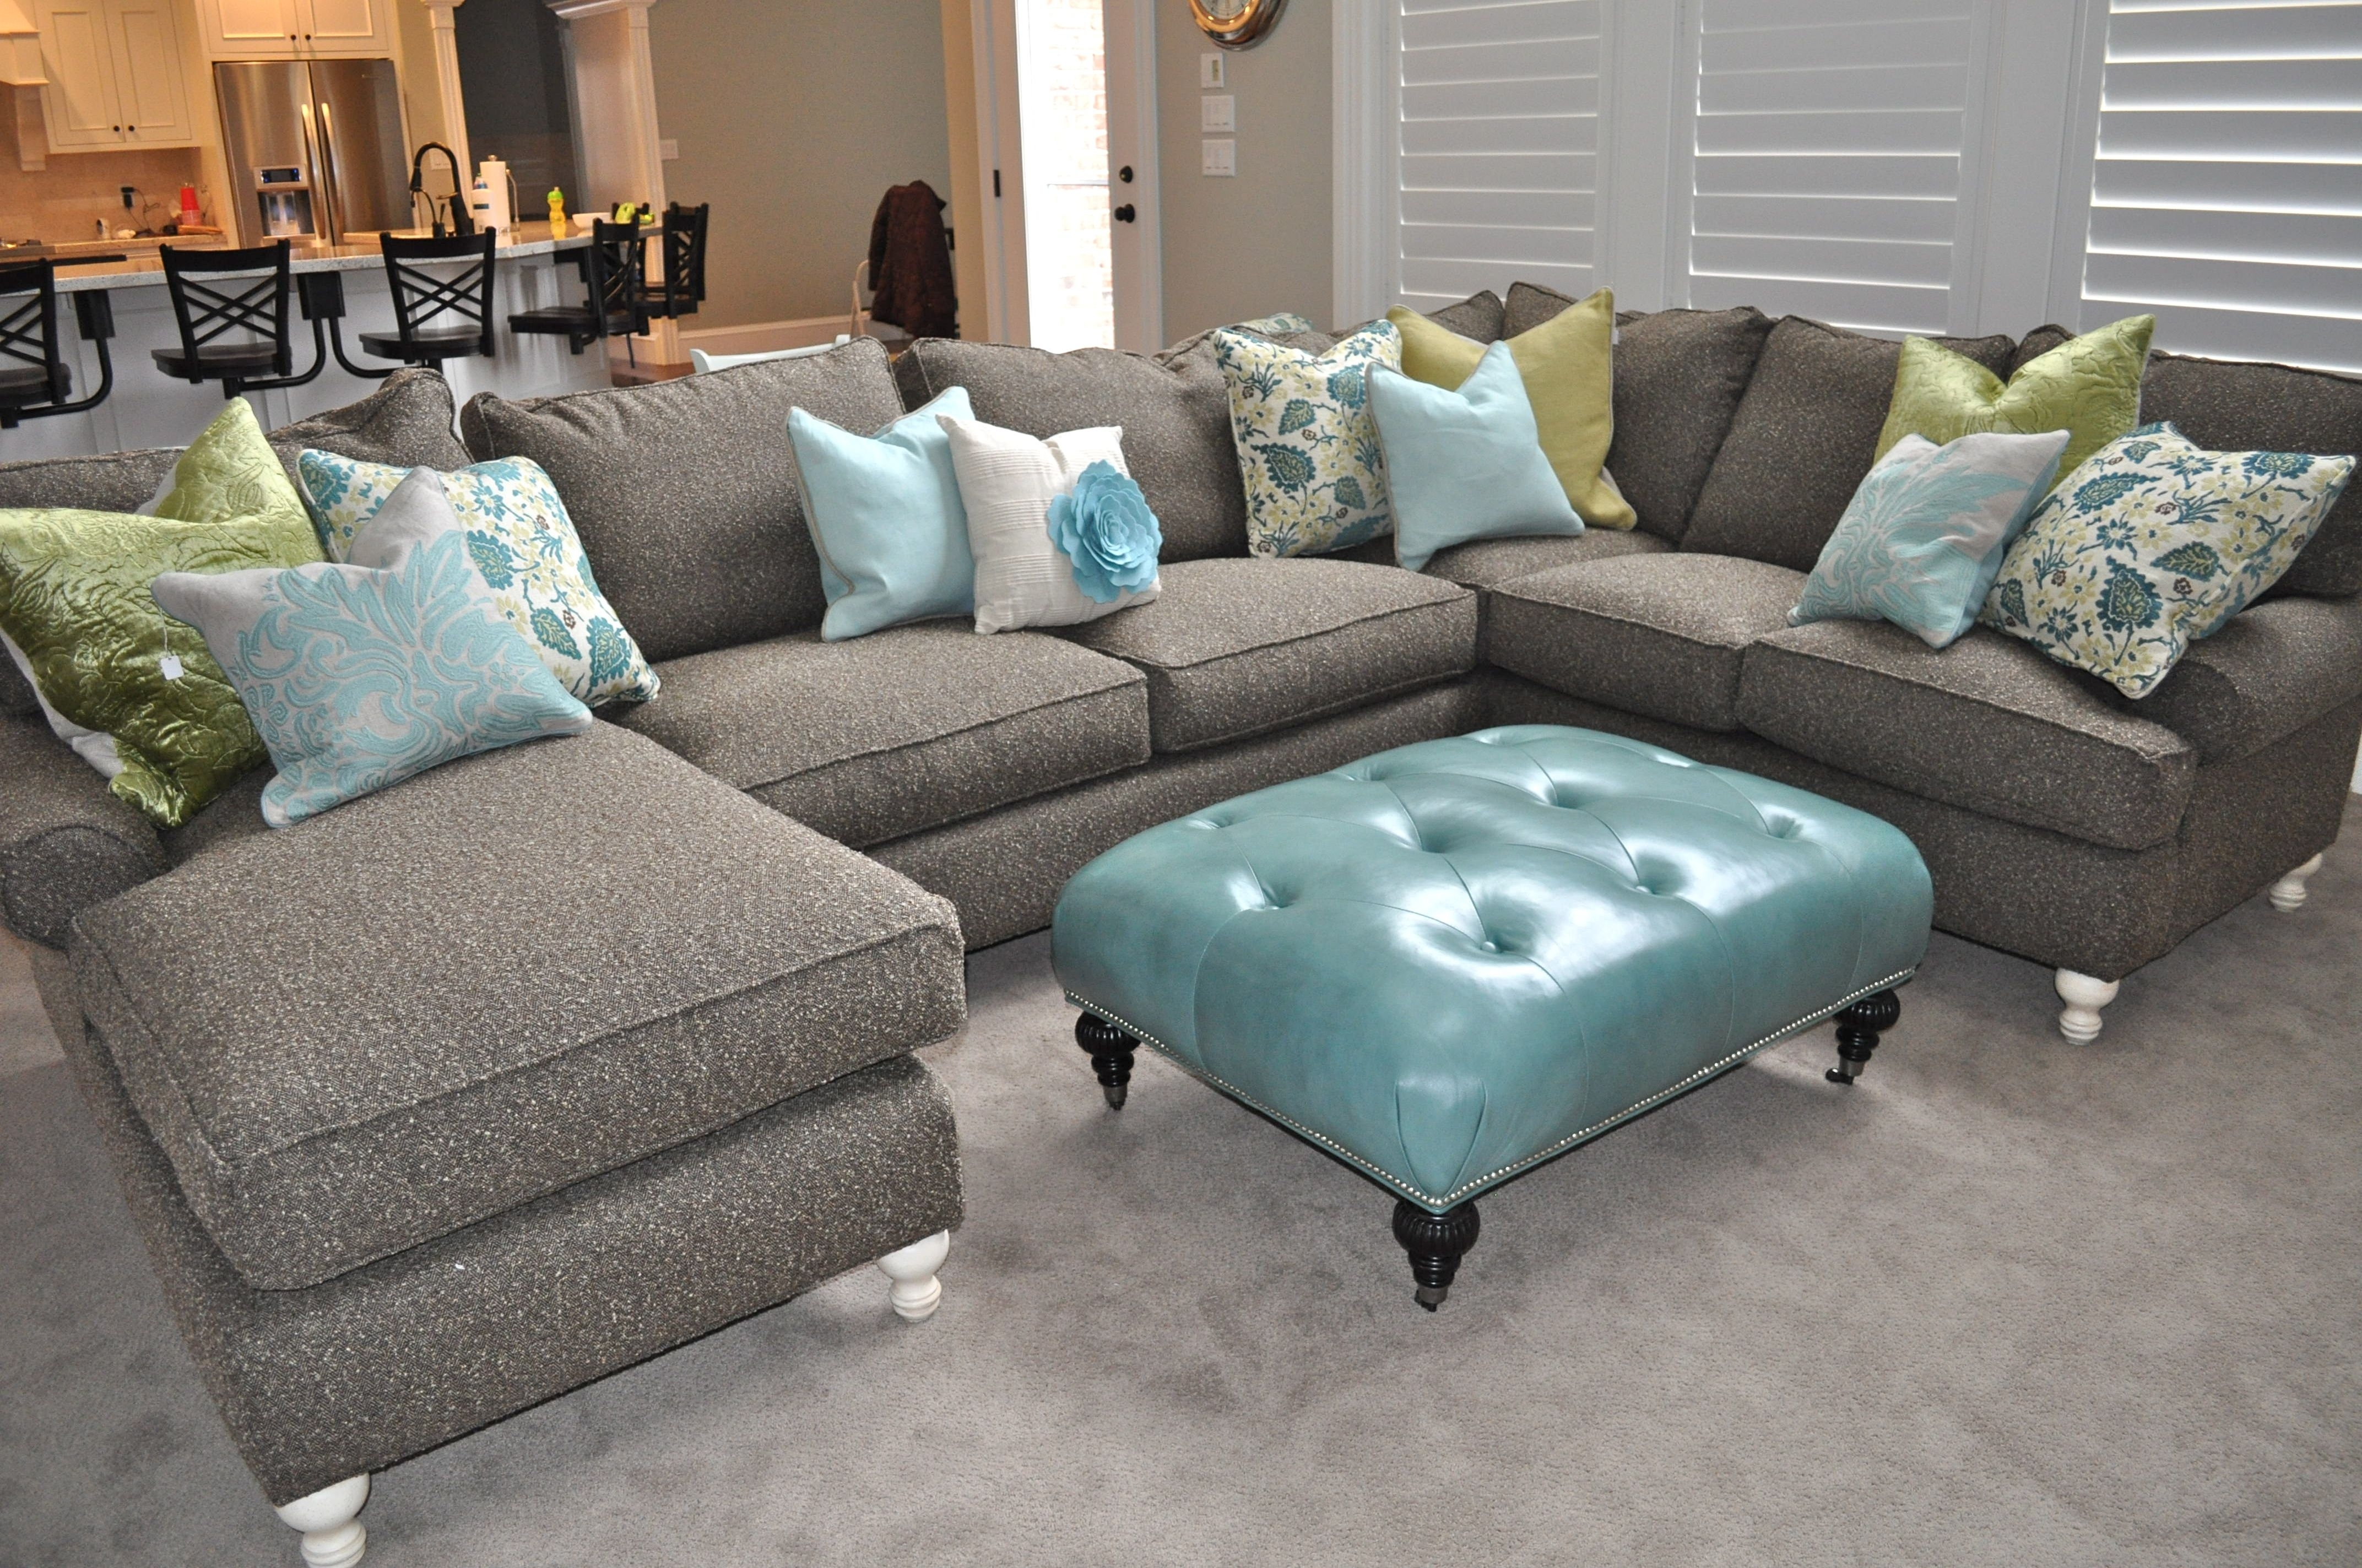 Cool Great U Sectional Sofas 79 About Remodel Interior Decor Home Throughout Blue U Shaped Sectionals (Image 2 of 10)